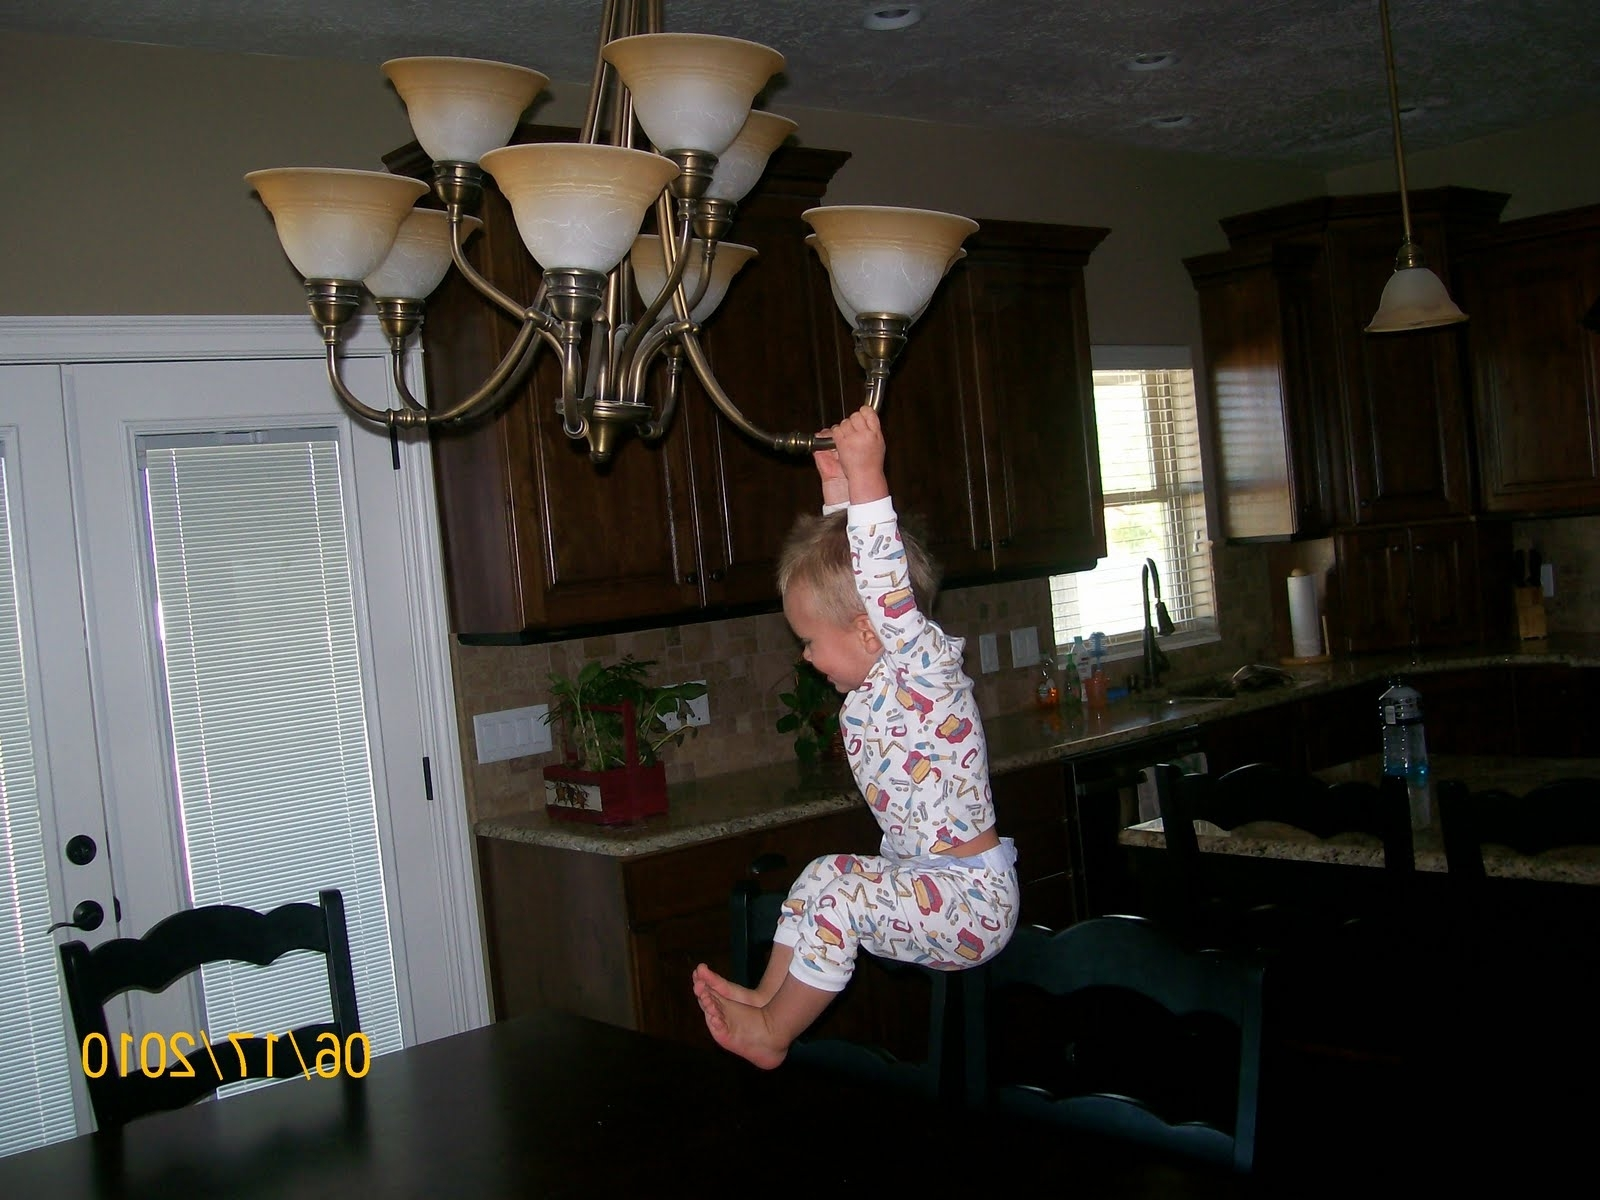 Weird Chandeliers Intended For Most Recent Chandelier In Living Room W/8Ft Ceilings? (View 16 of 20)